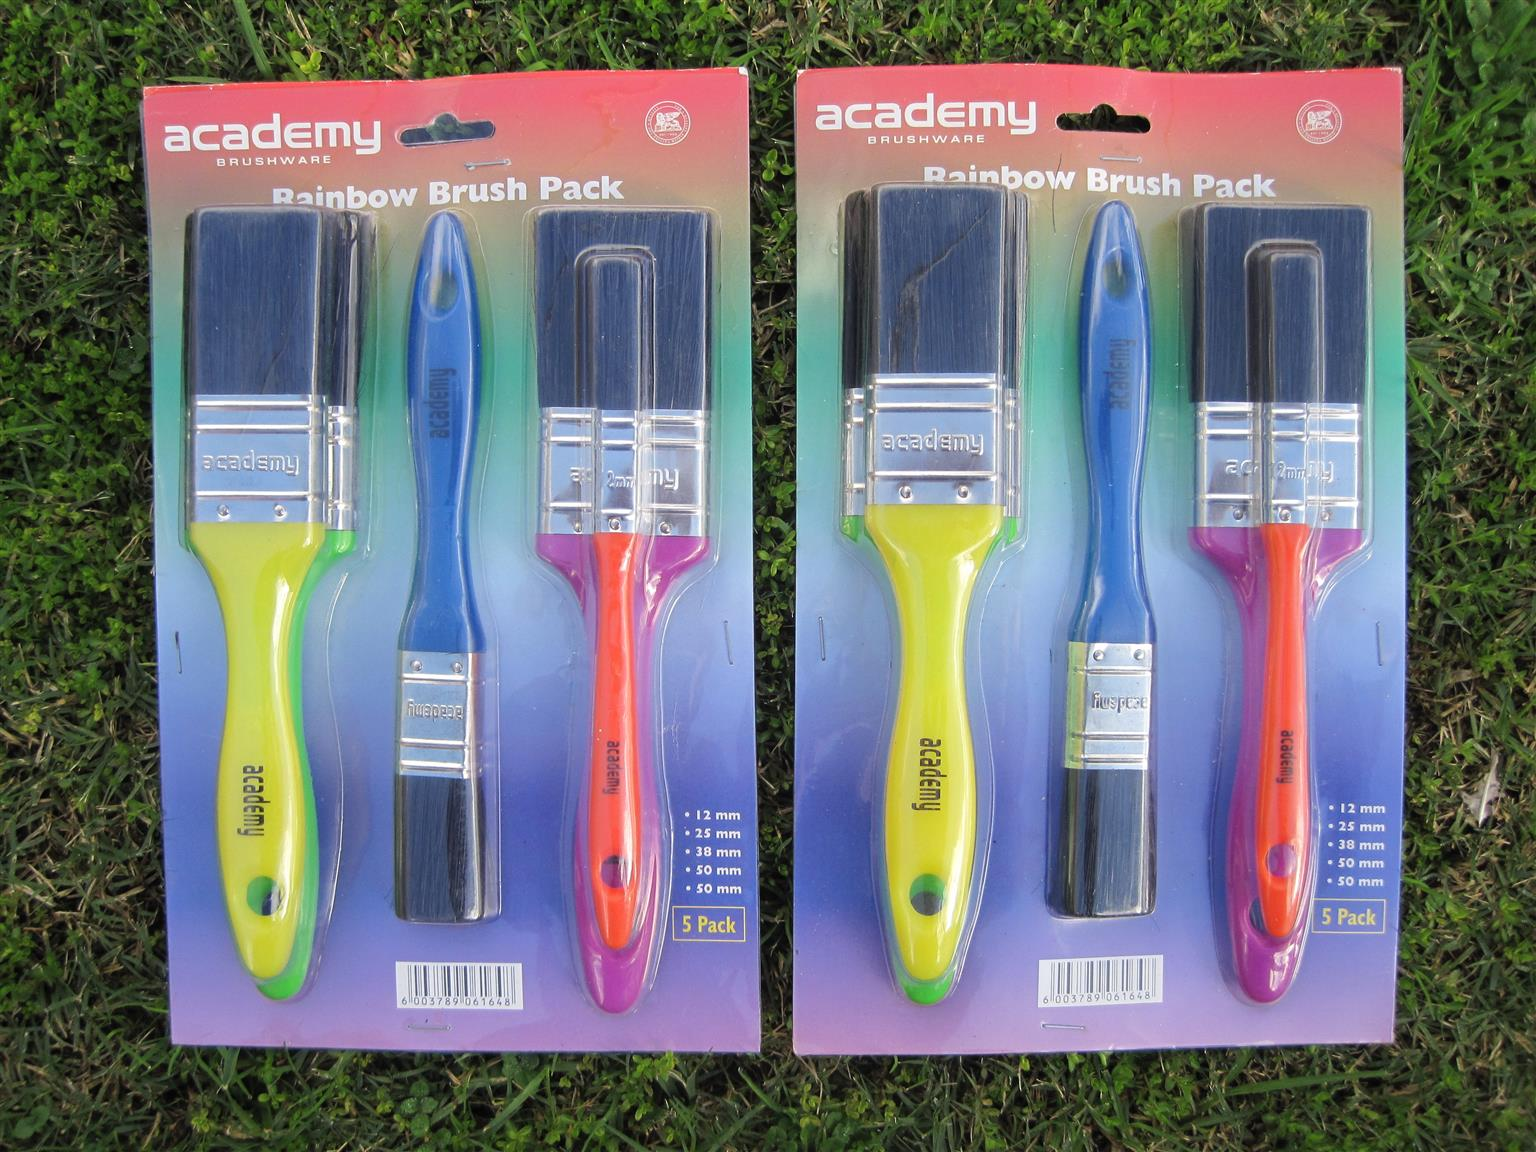 Academy Paint Brush Set - New - at 50% off